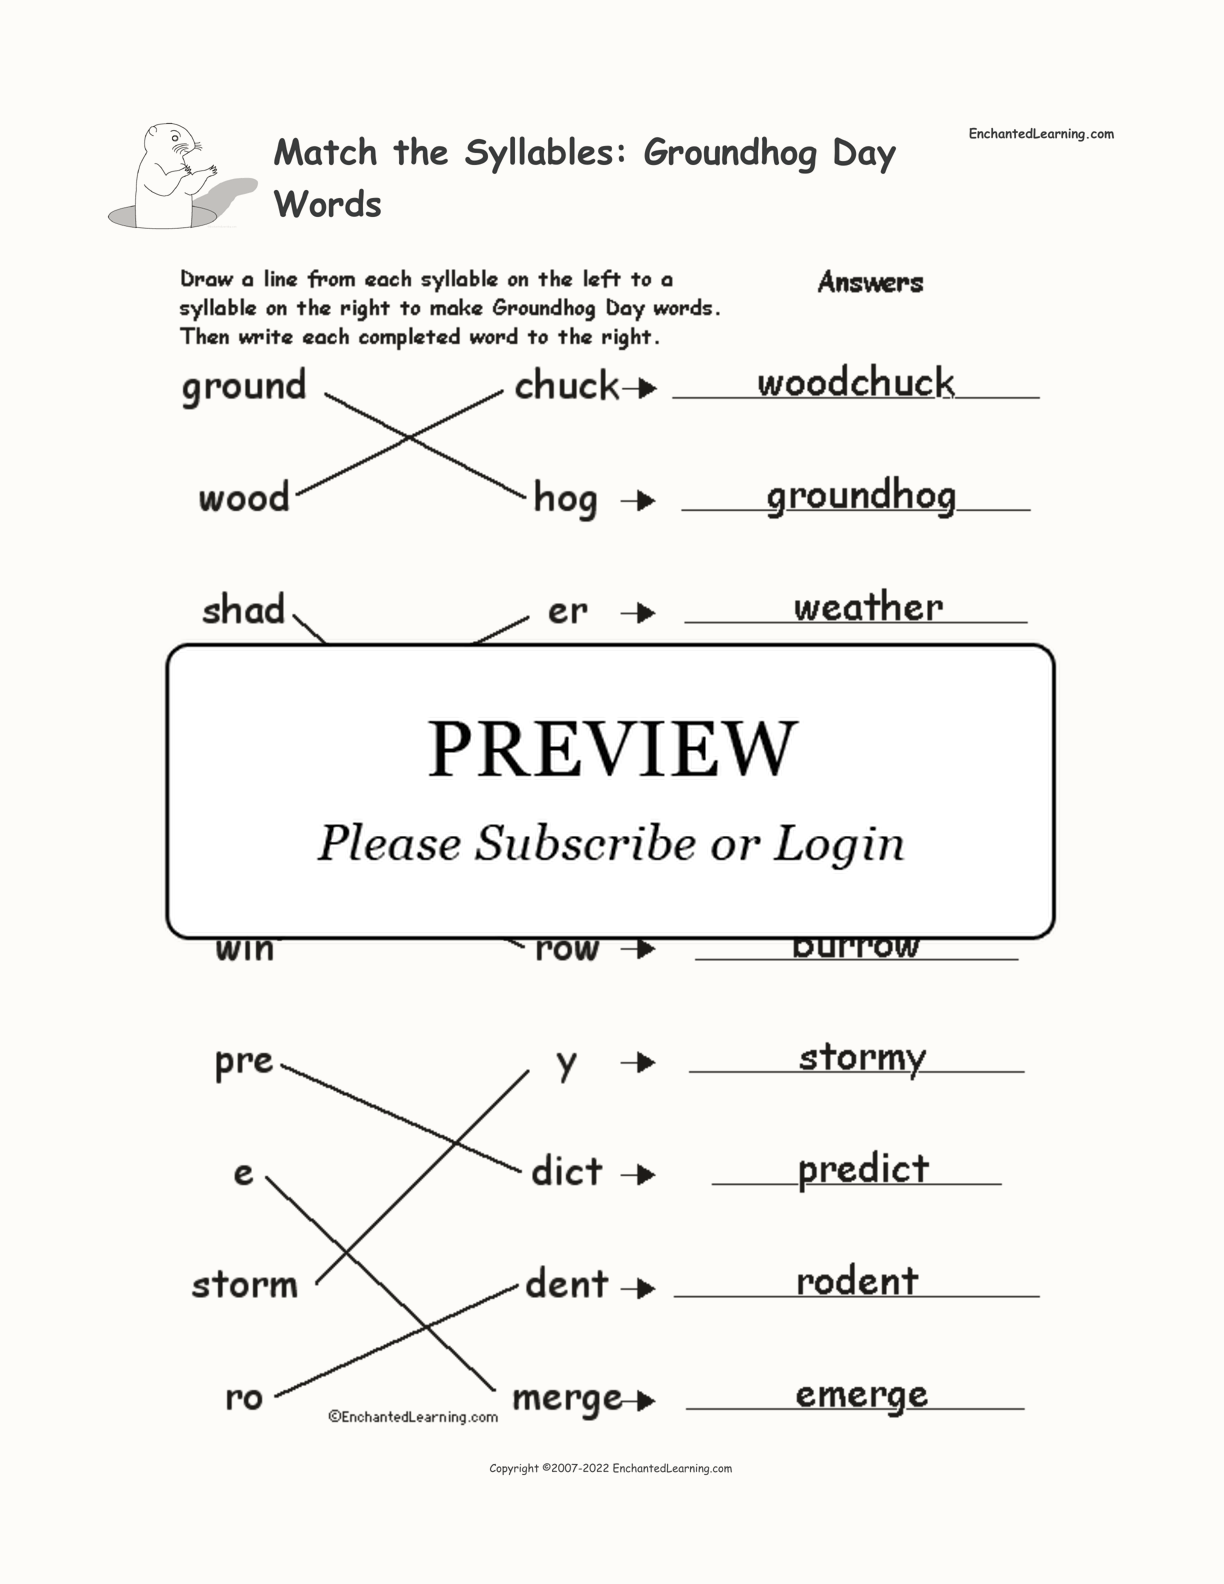 Match The Syllables Groundhog Day Words